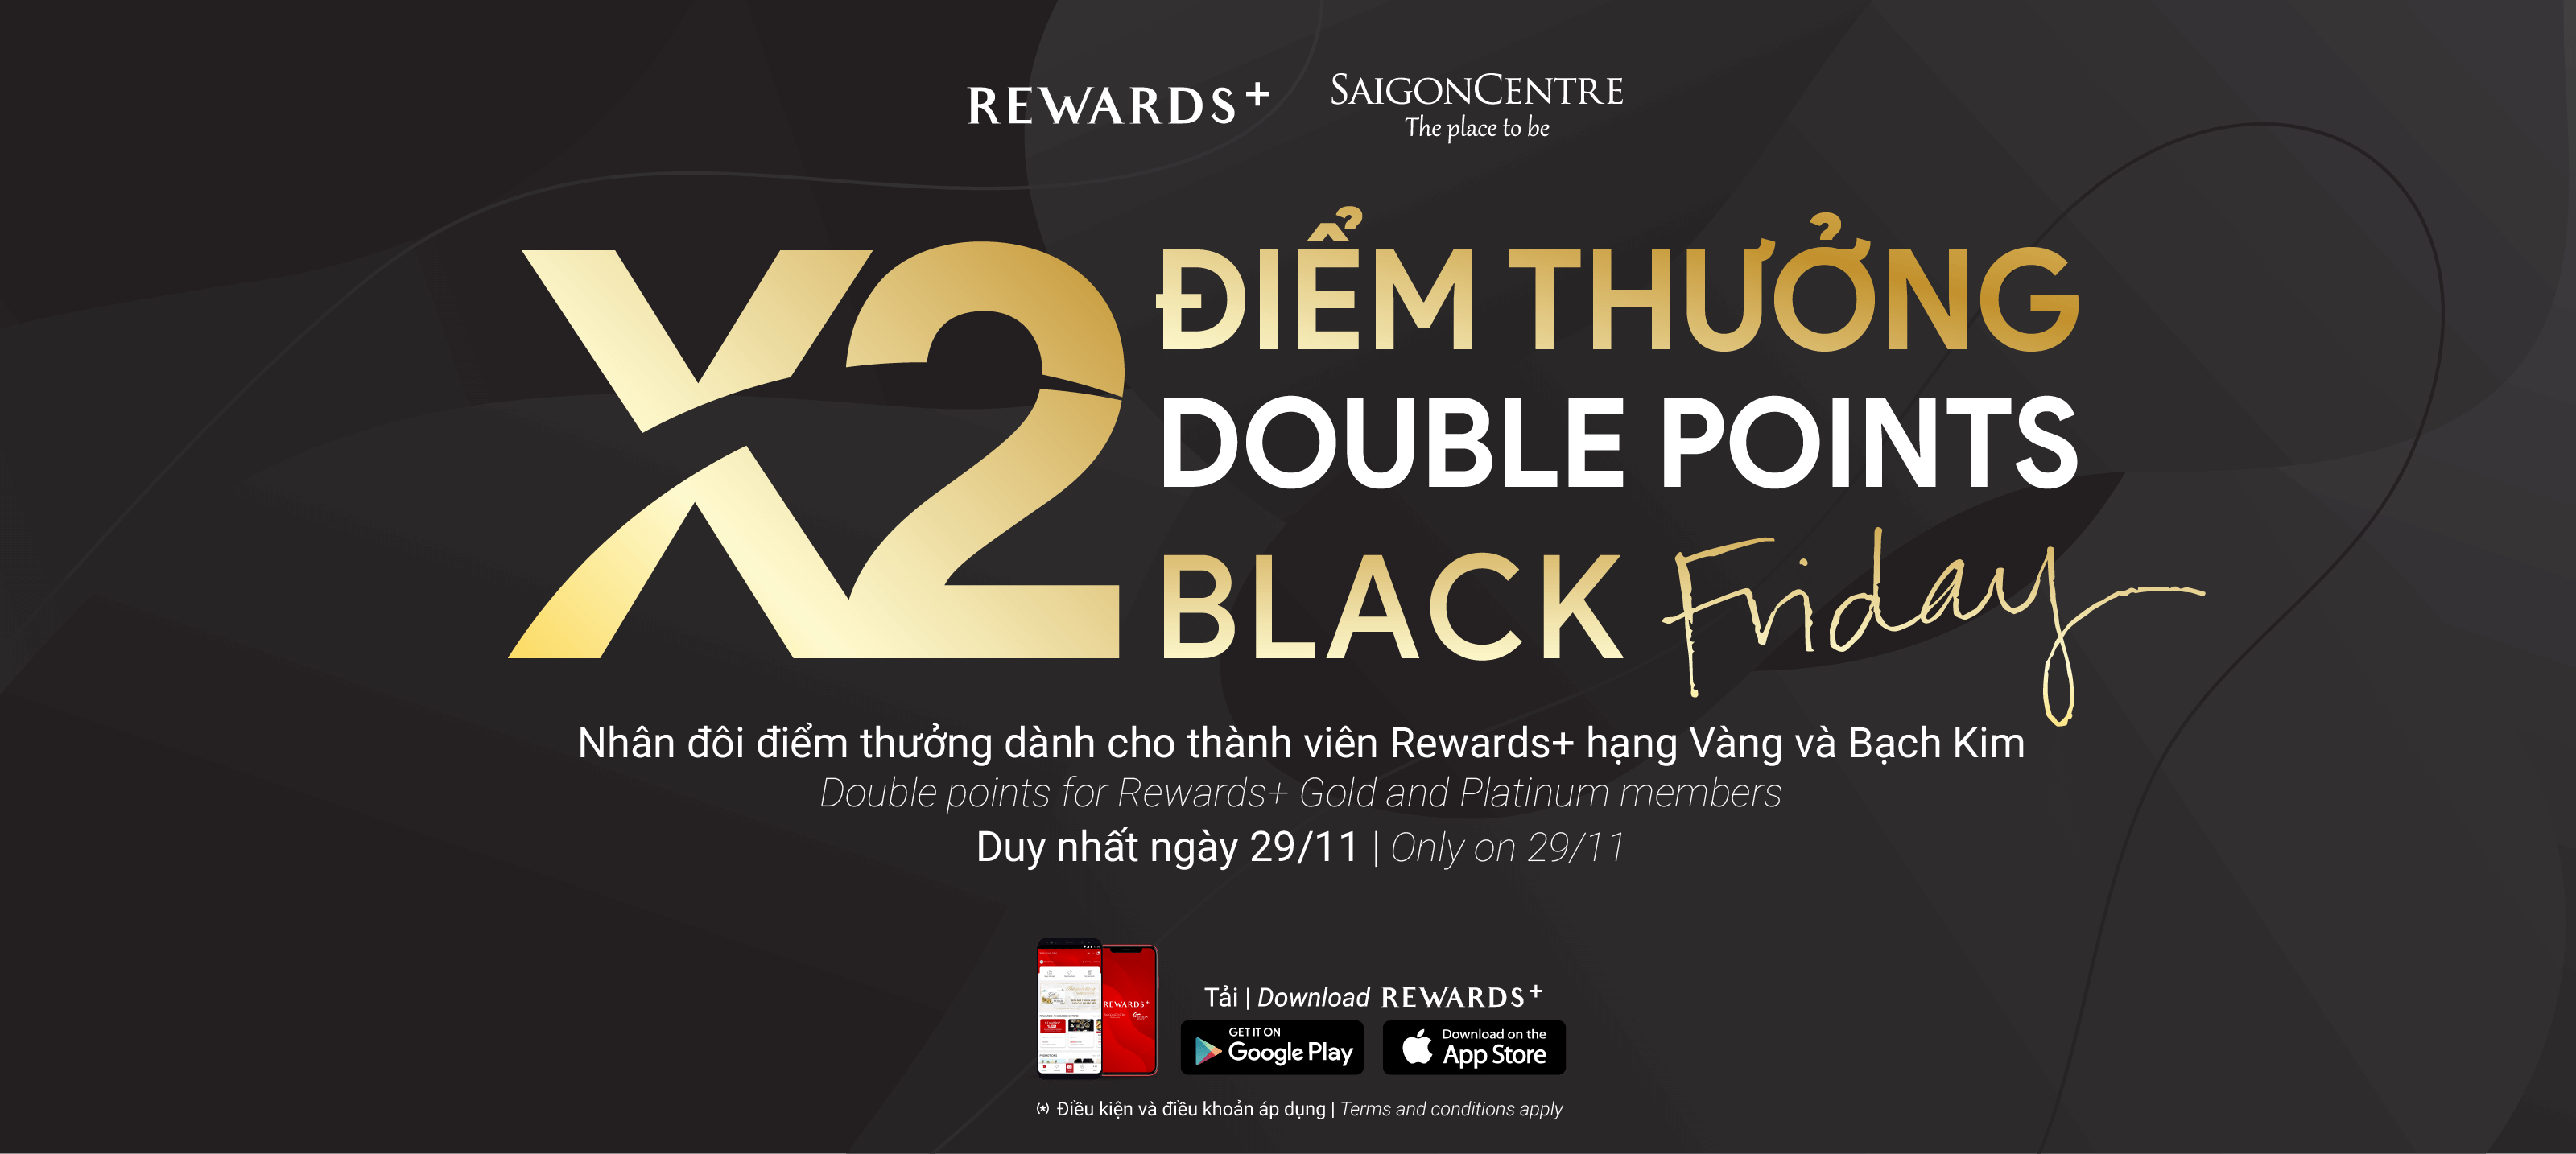 BLACK FRIDAY DOUBLE POINTS